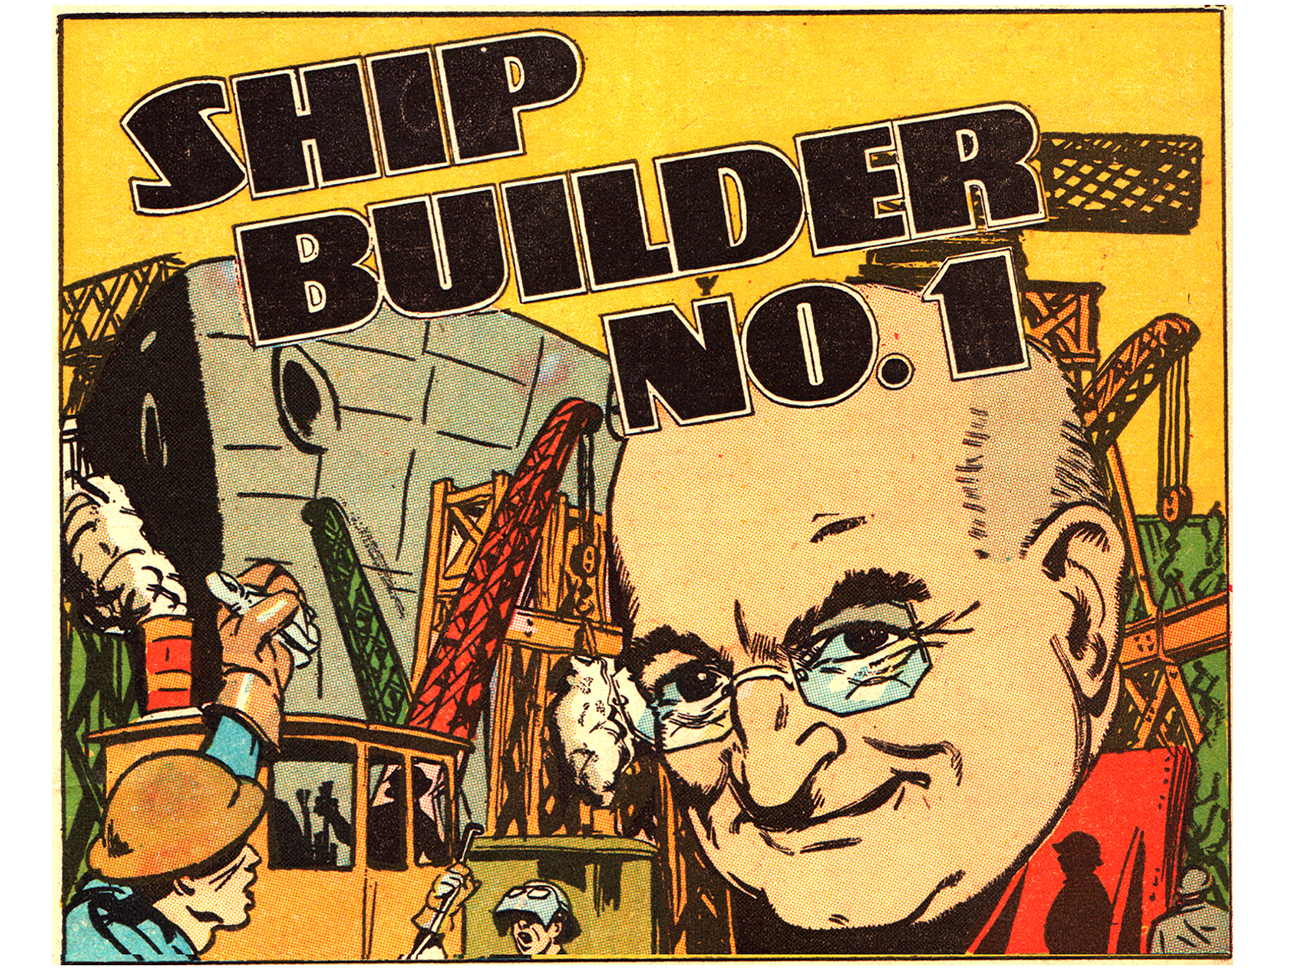 Comic book panel featuring Henry J. Kaiser as 'Shipbuilder No. 1' in a 1943 Real Heroes comic book.